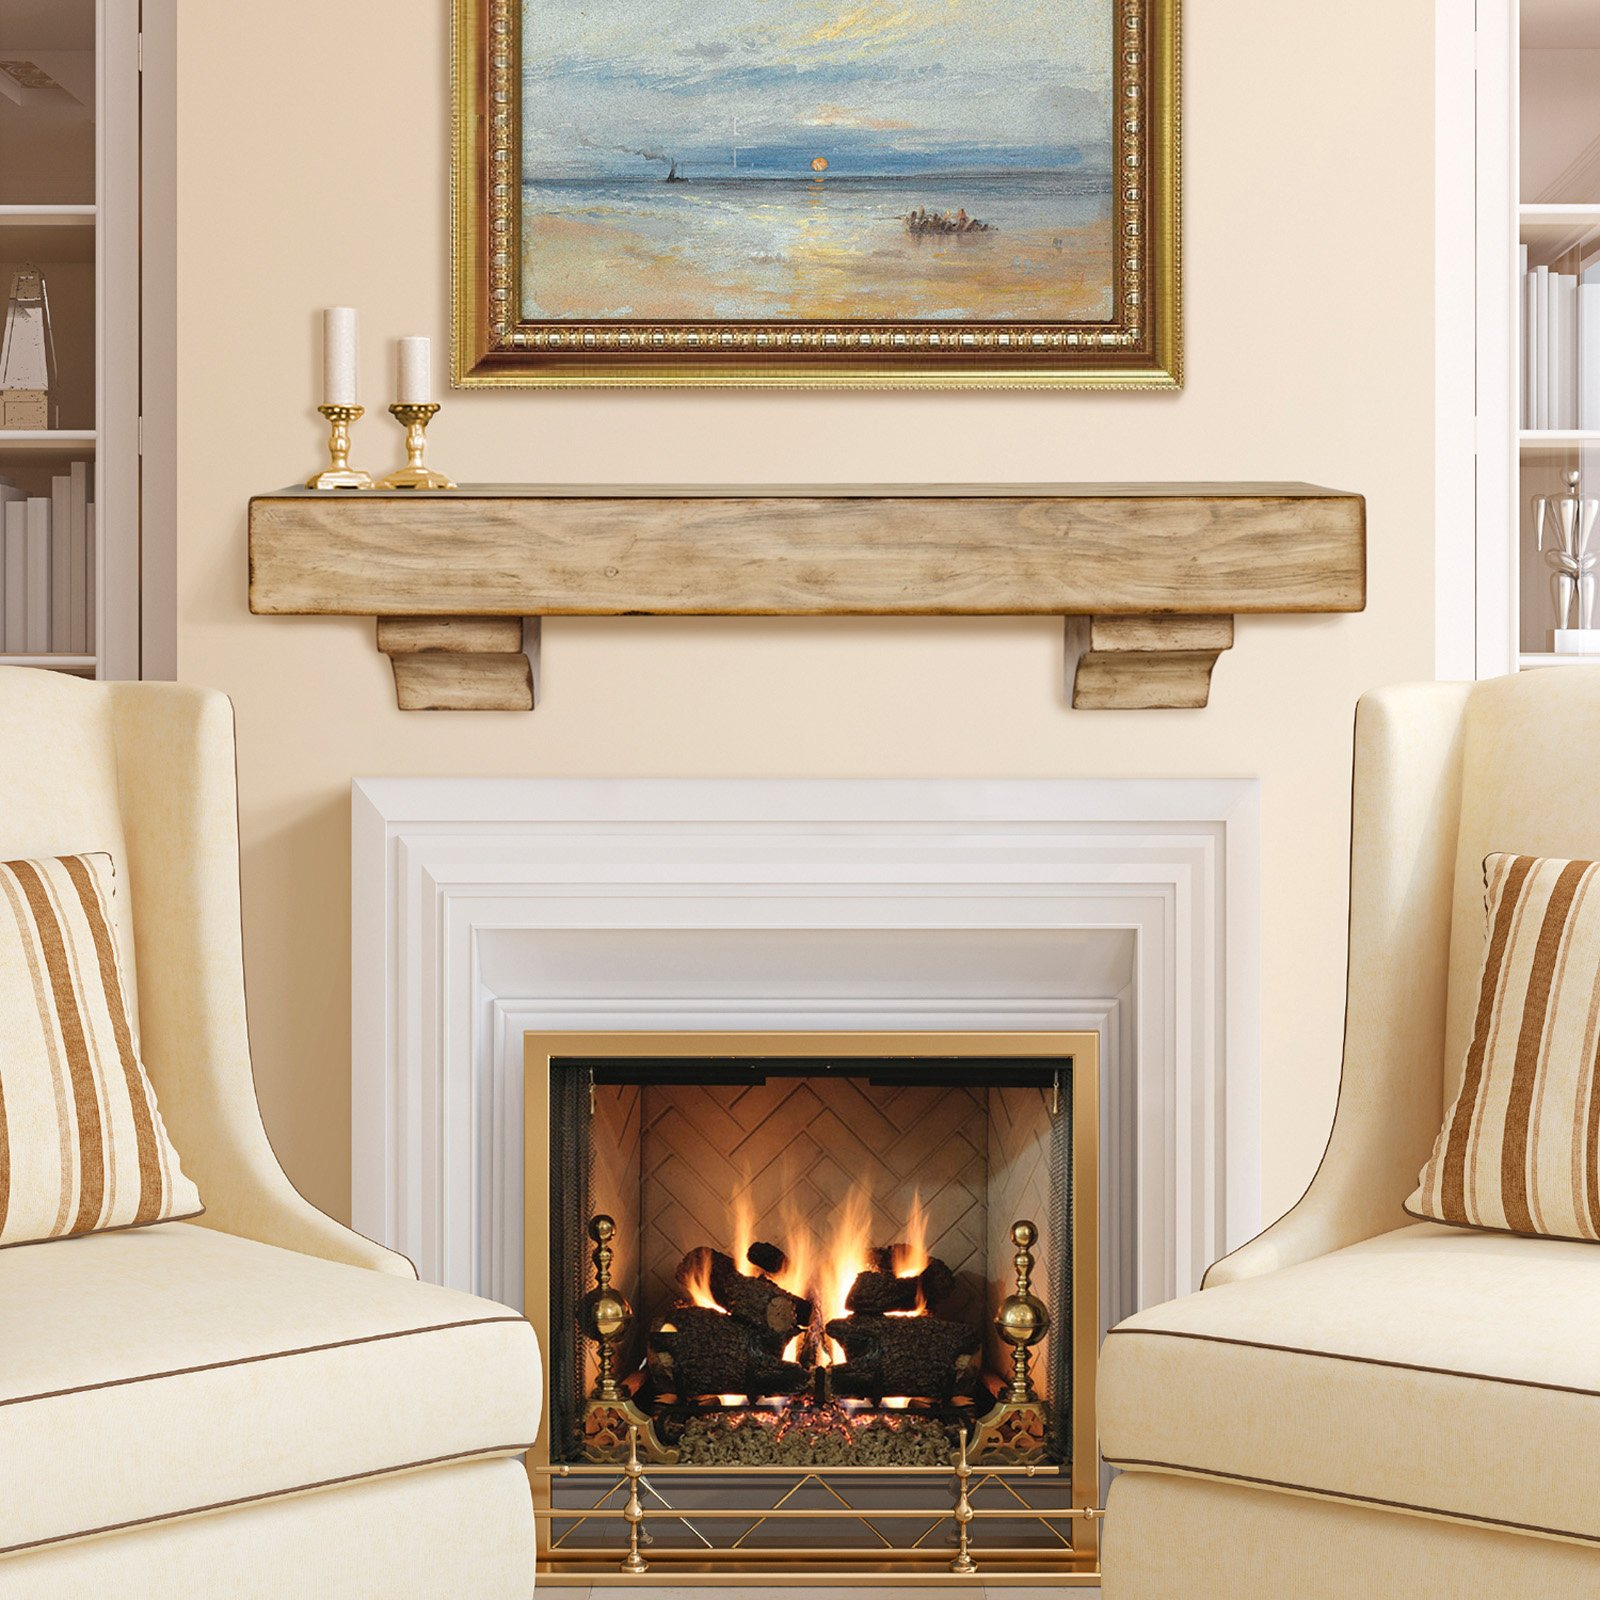 Wood burning stove that looks like a fireplace 10